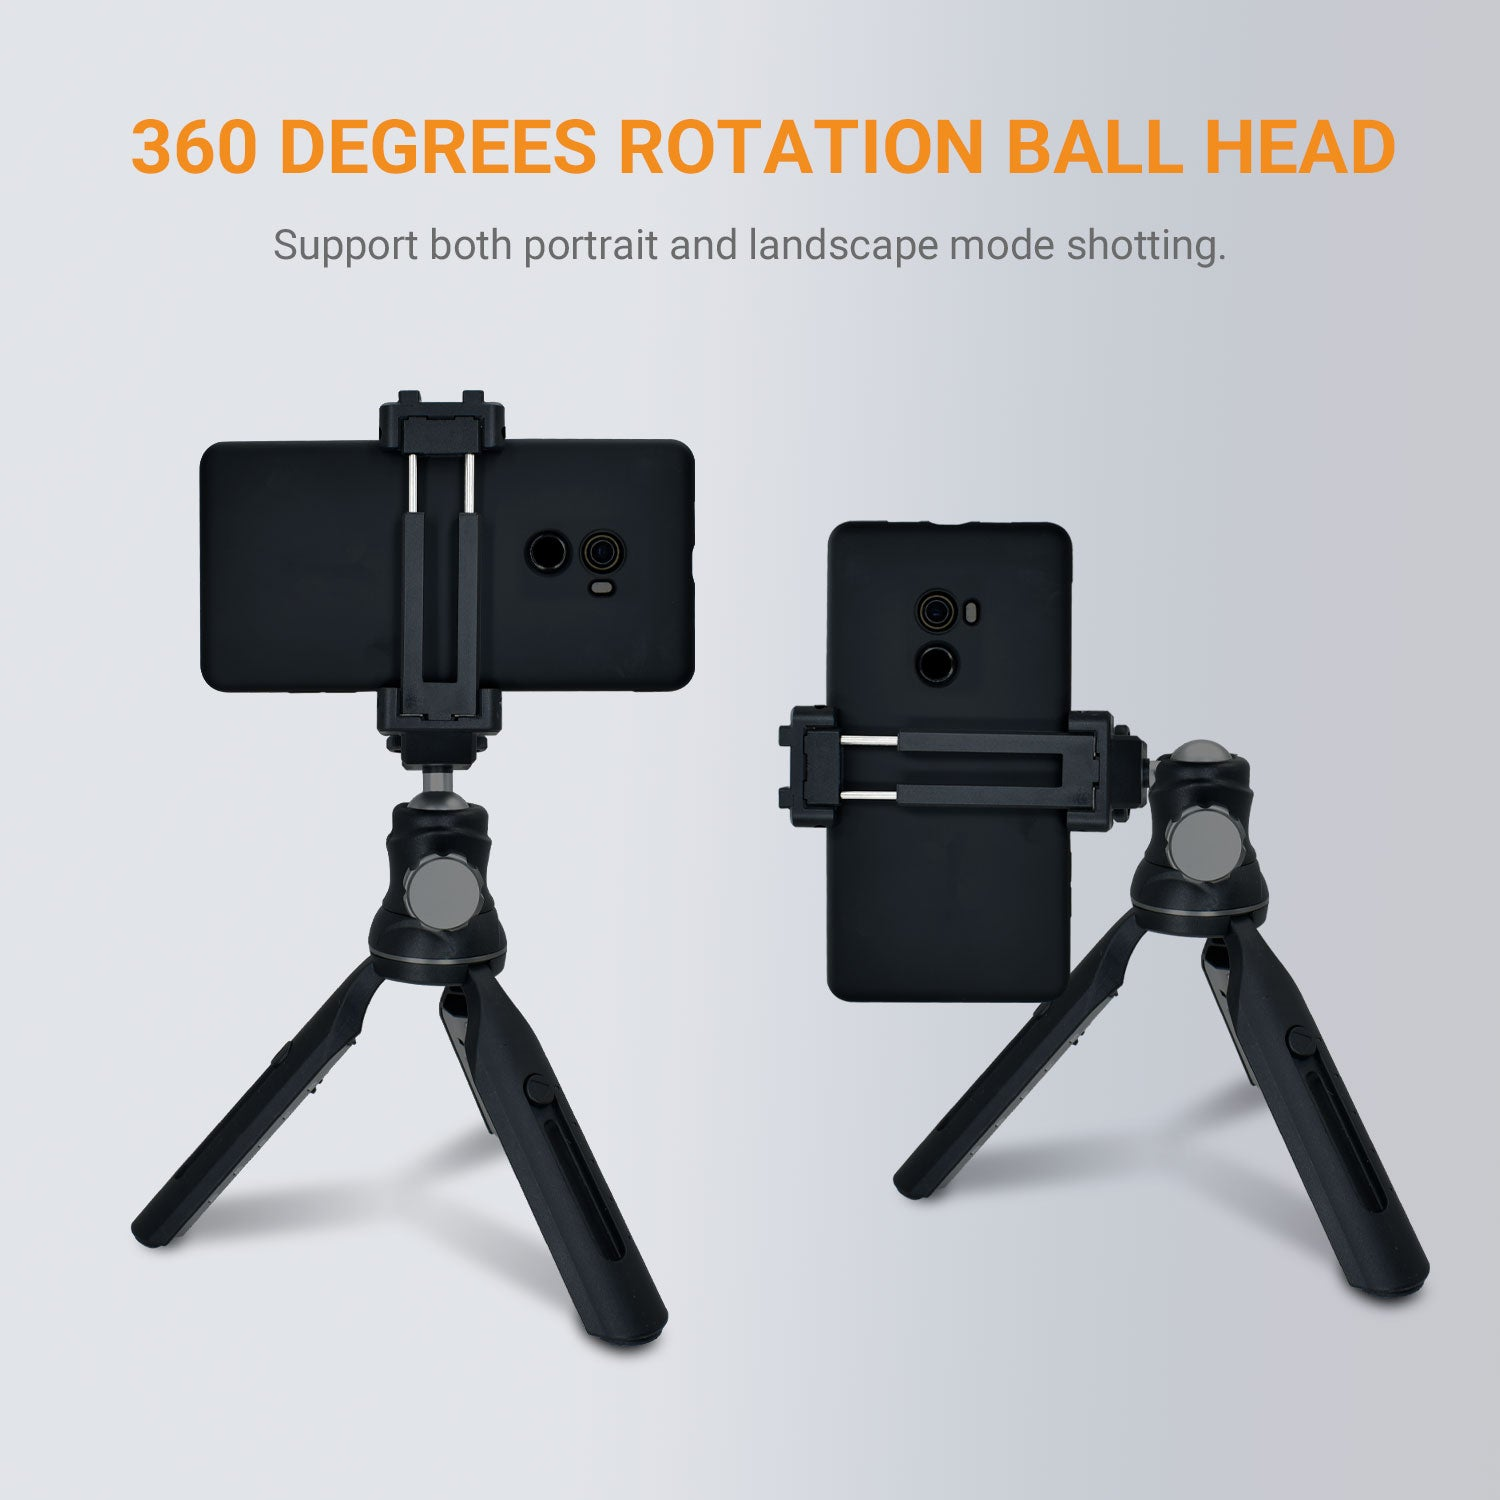 Adjustable Height & Free Angle